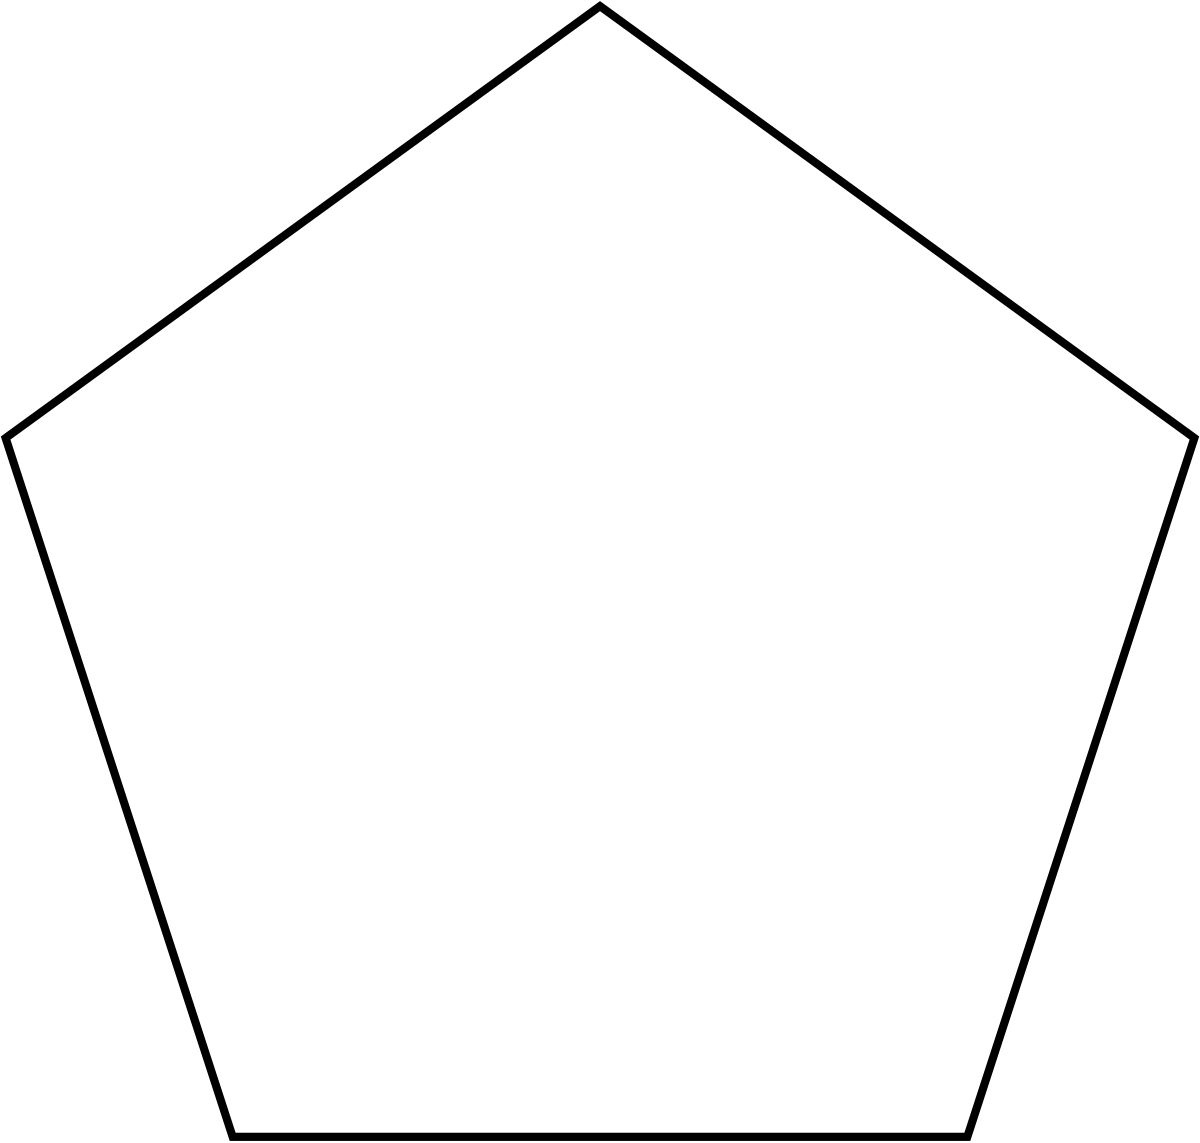 Drawing pentagon simple. Convex polygon wikipedia